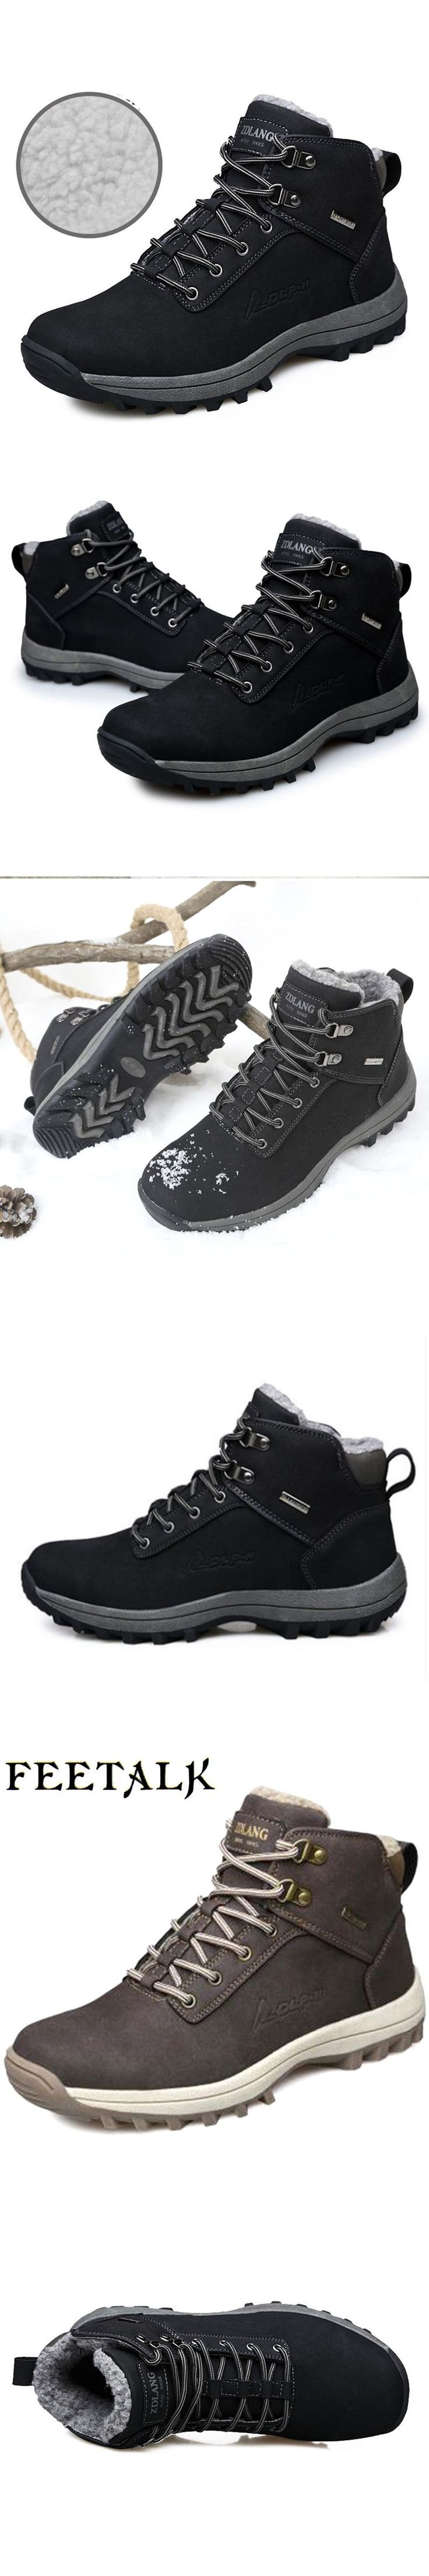 Waterproof Hiking Boots For Men Outdoor Genuiner Leather Mens Hiking Shoes Winter plush Warm Snow Boots Trekking Shoes #hikingshoes